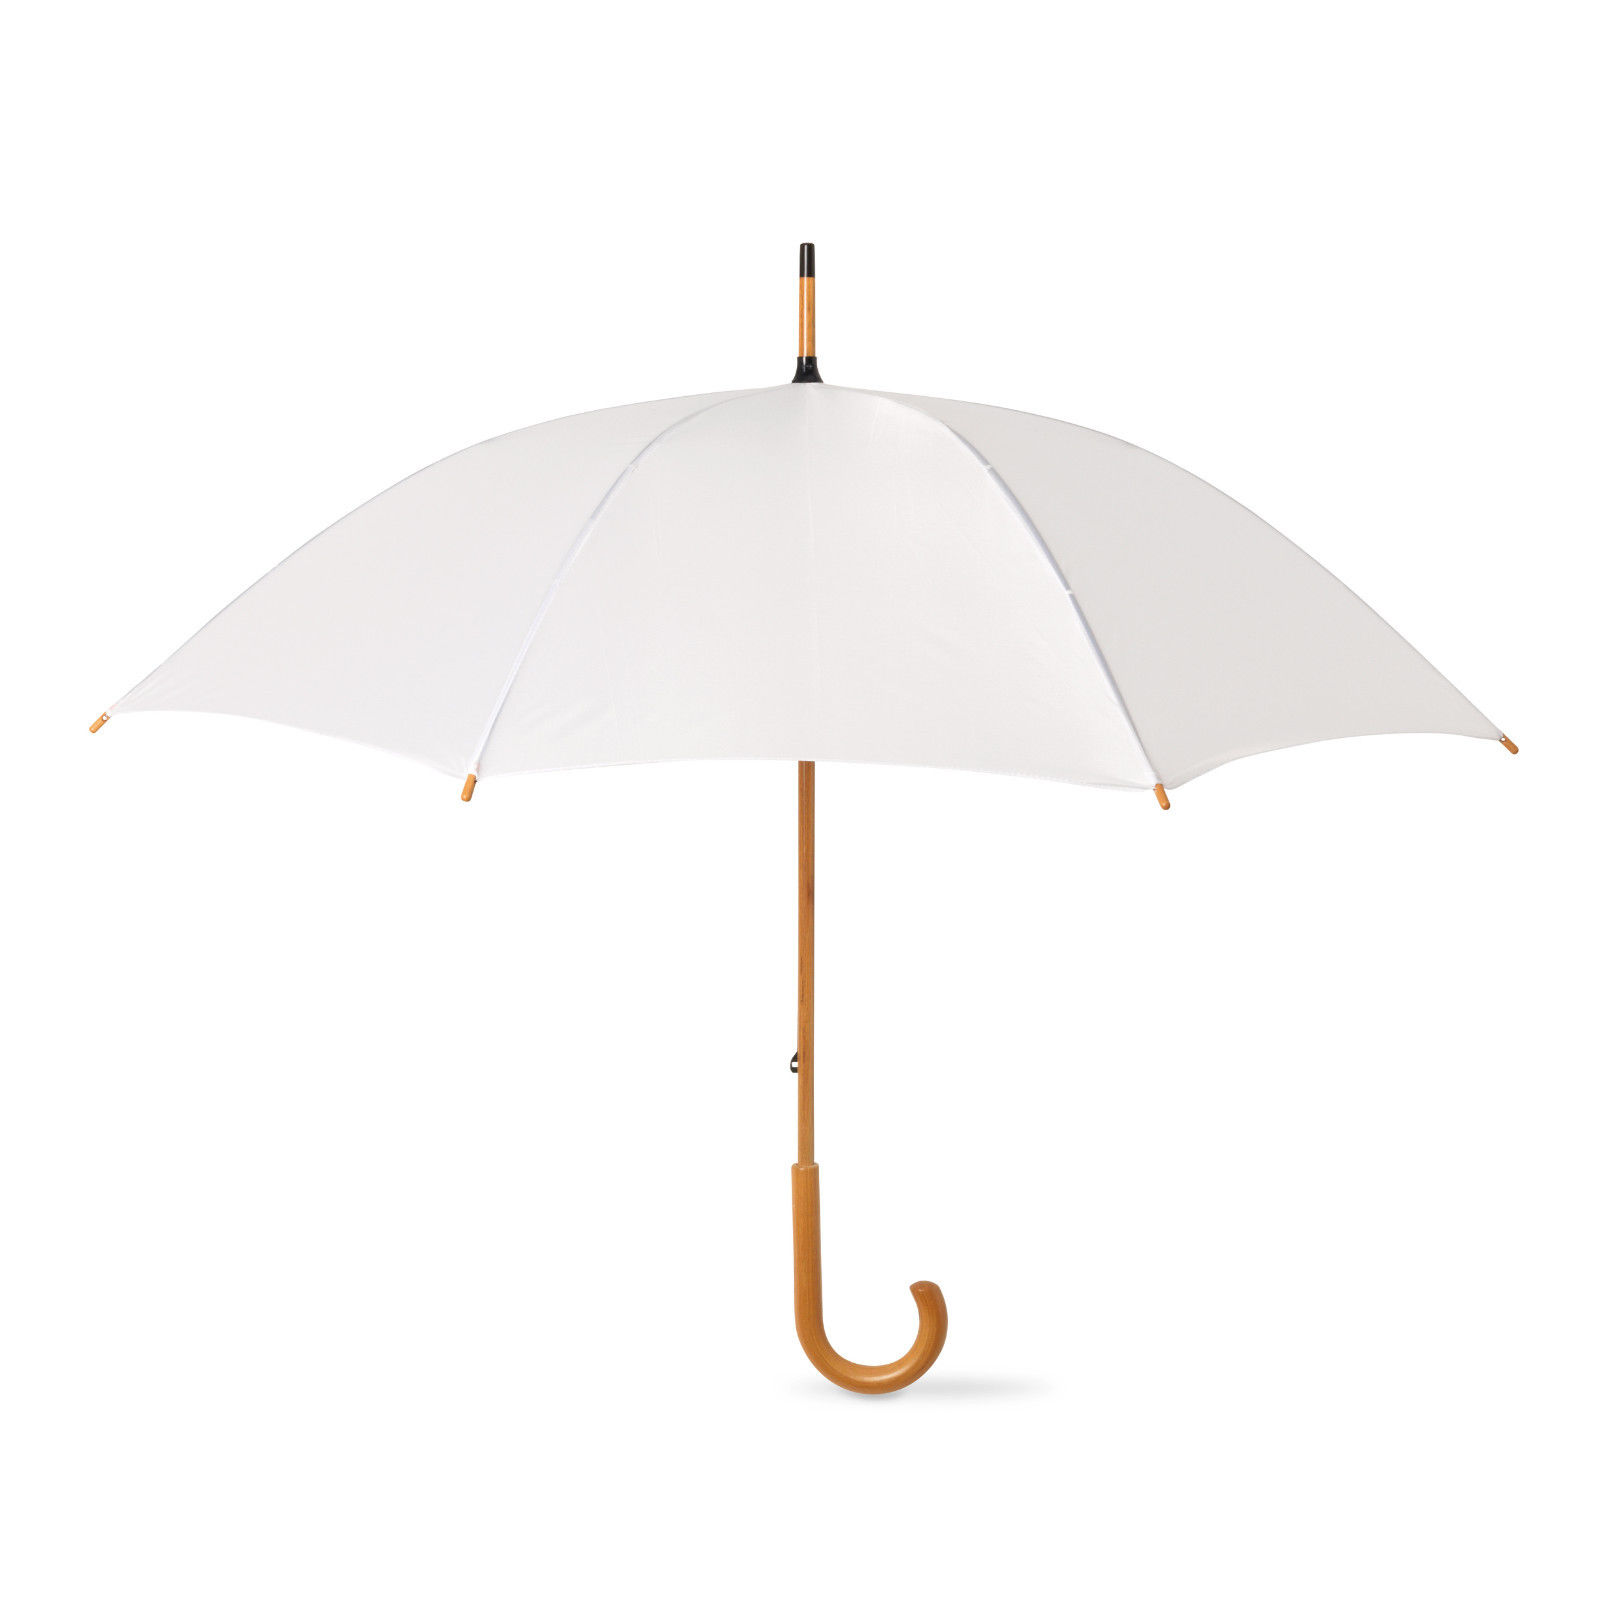 5-Wedding-Style-Umbrellas-with-crooked-wooden-handle-Bride-Groom-Bridesmaid